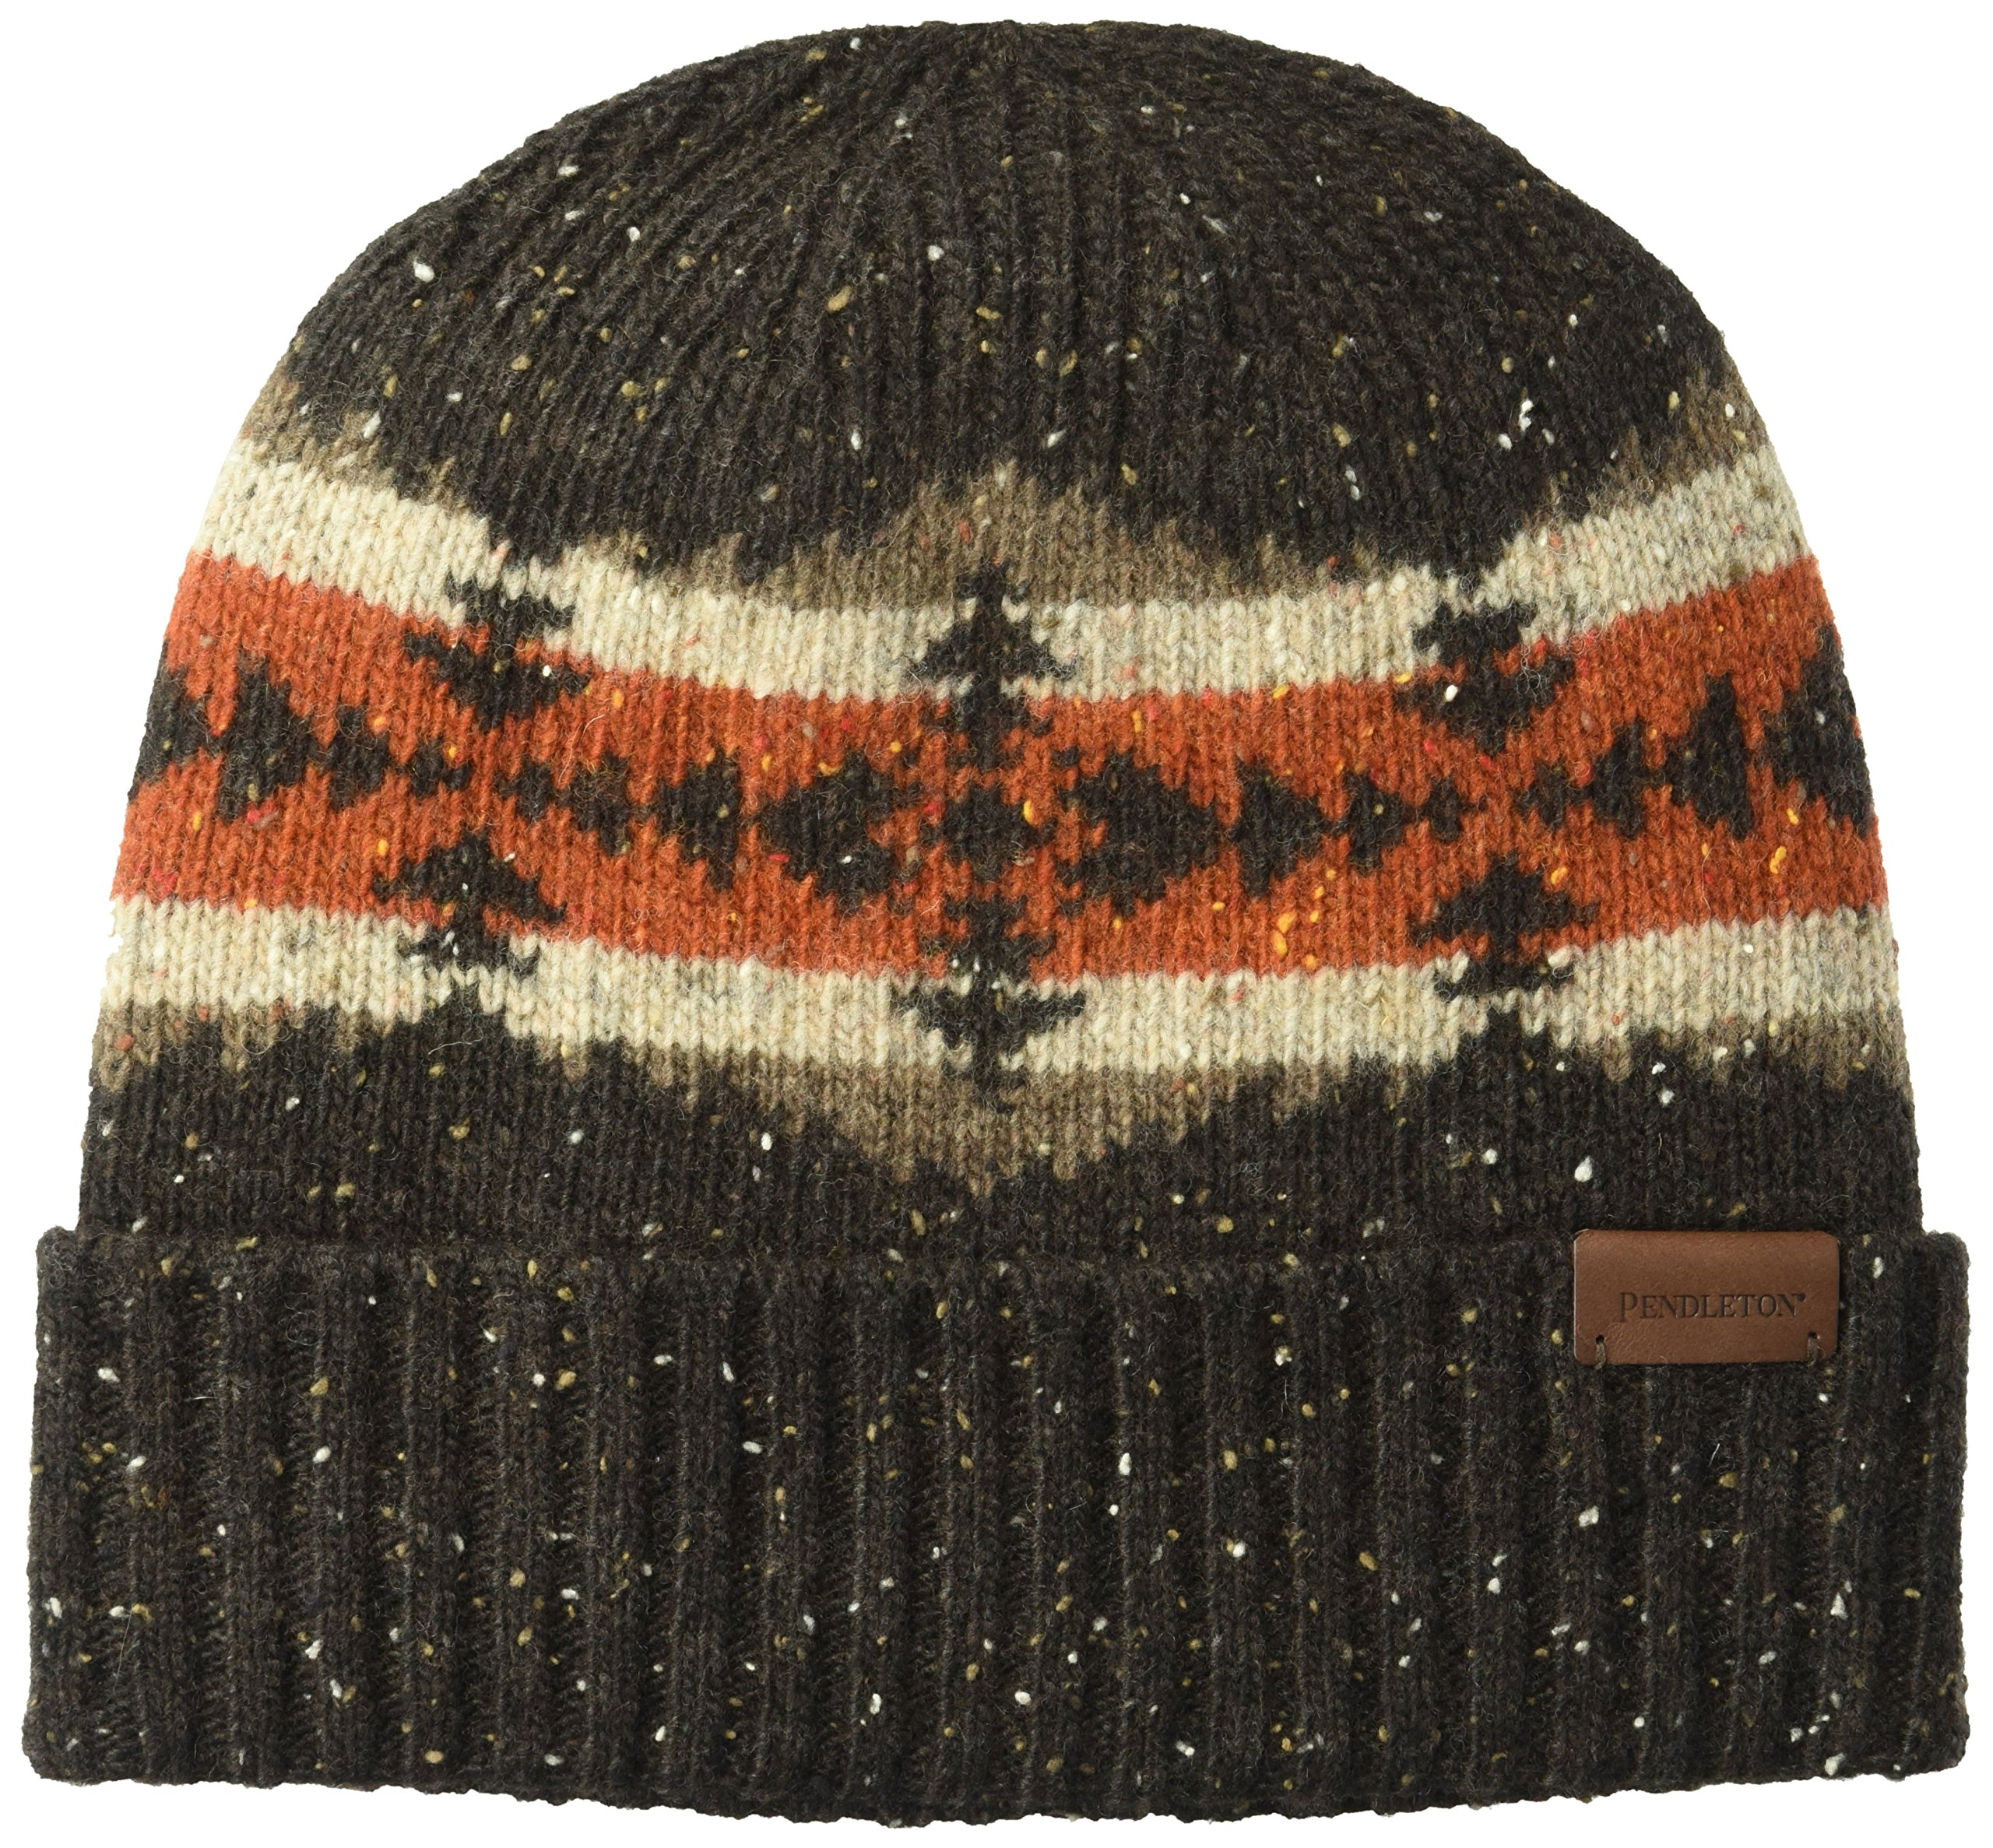 Pendleton Men's Cozie Winter Knit Beanie, Hawkeye Brown, One Size